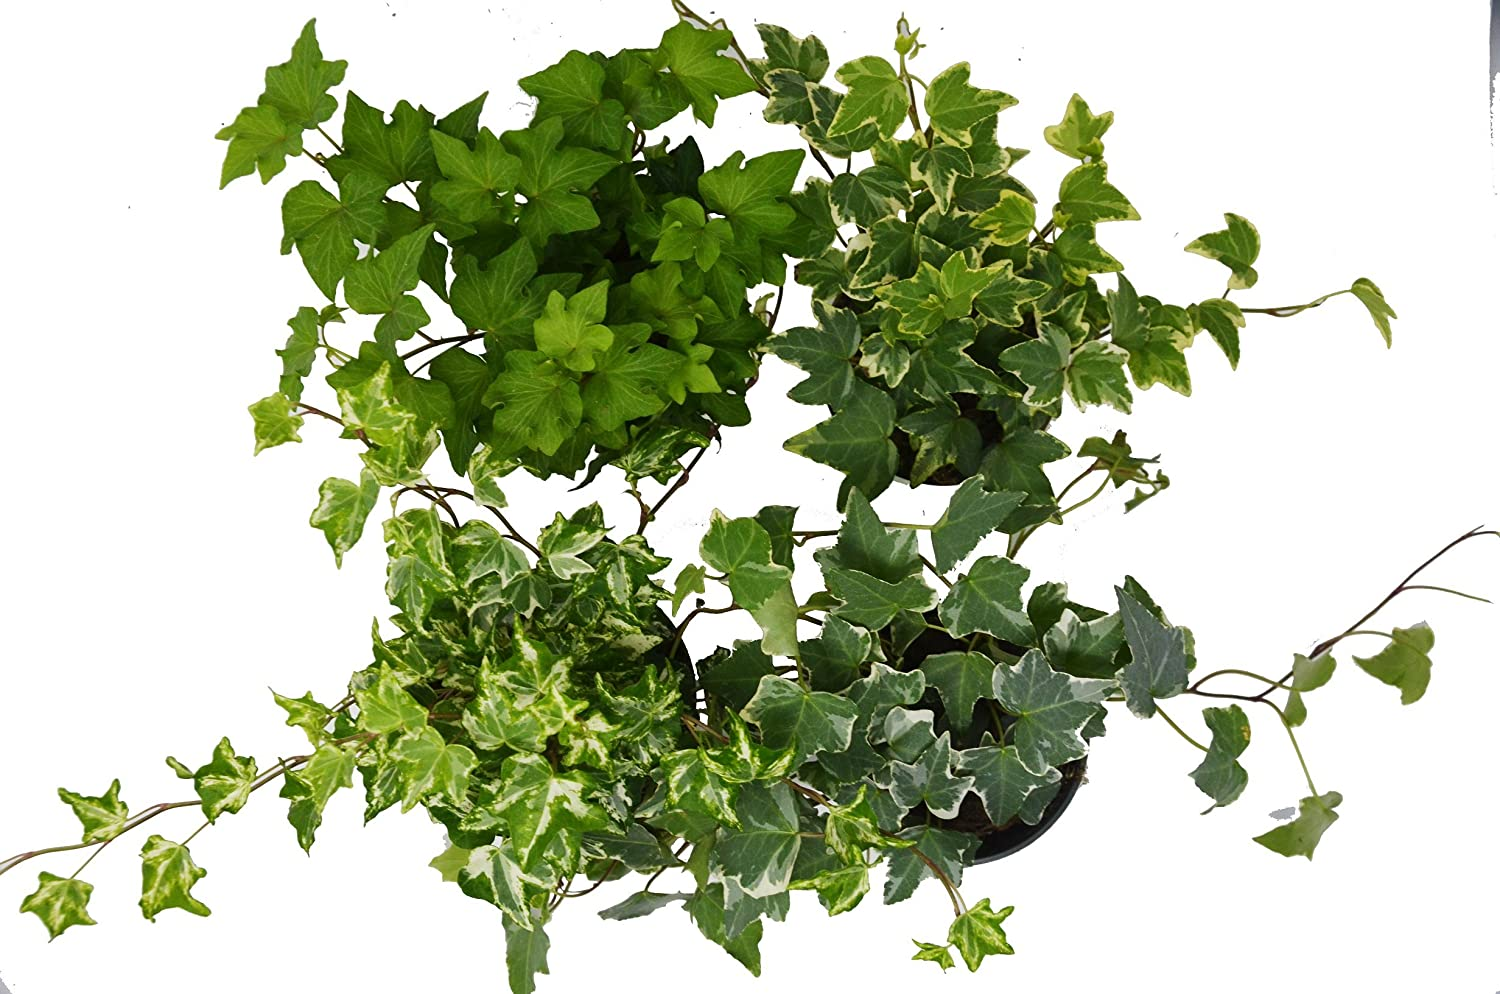 Buy 4 Different English Ivy plants at Amazon